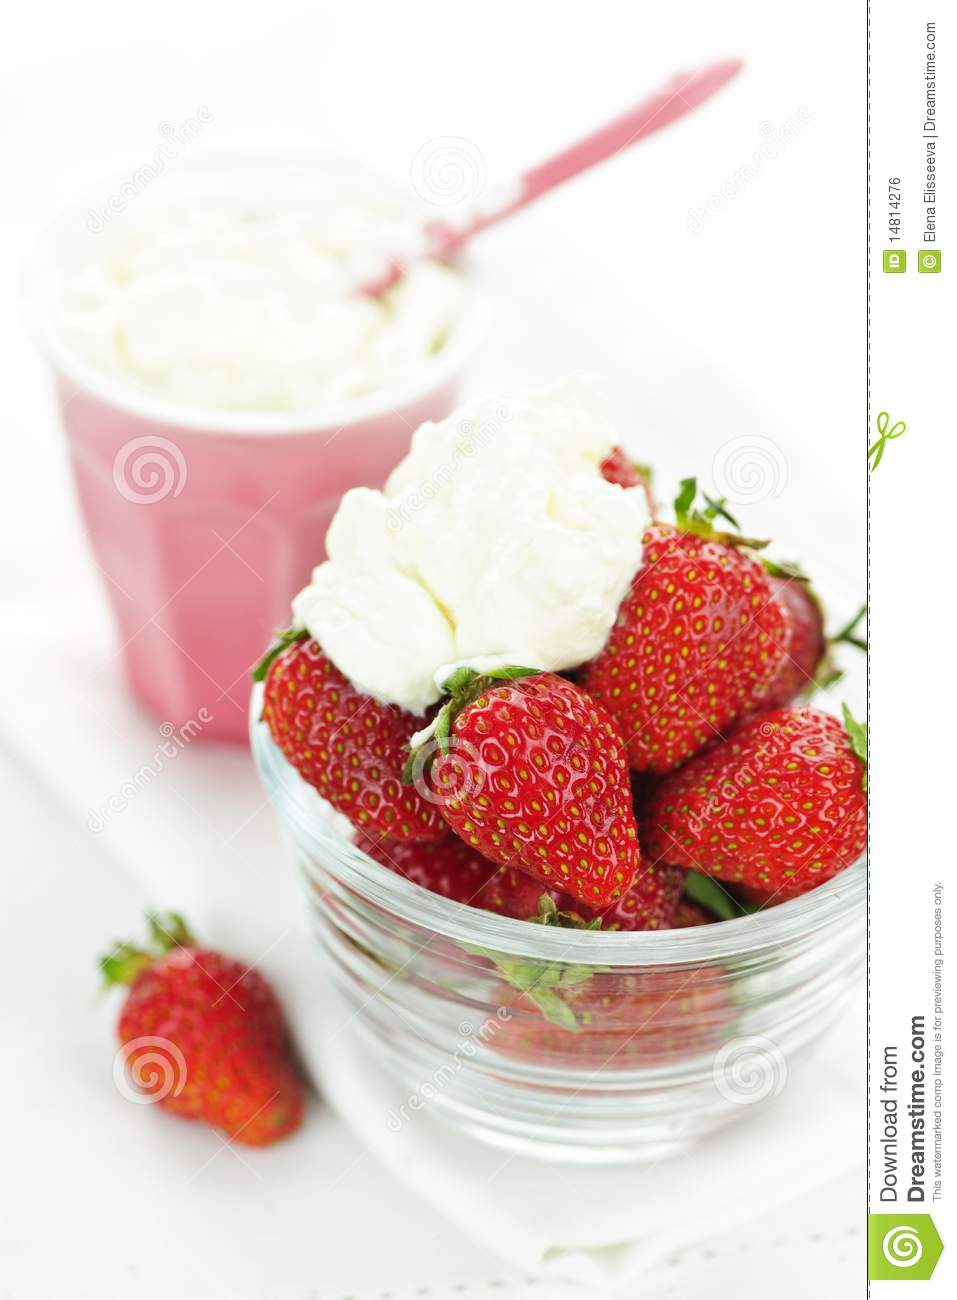 Strawberries And Whipped Cream Bowl Bowl Of Strawberries W...